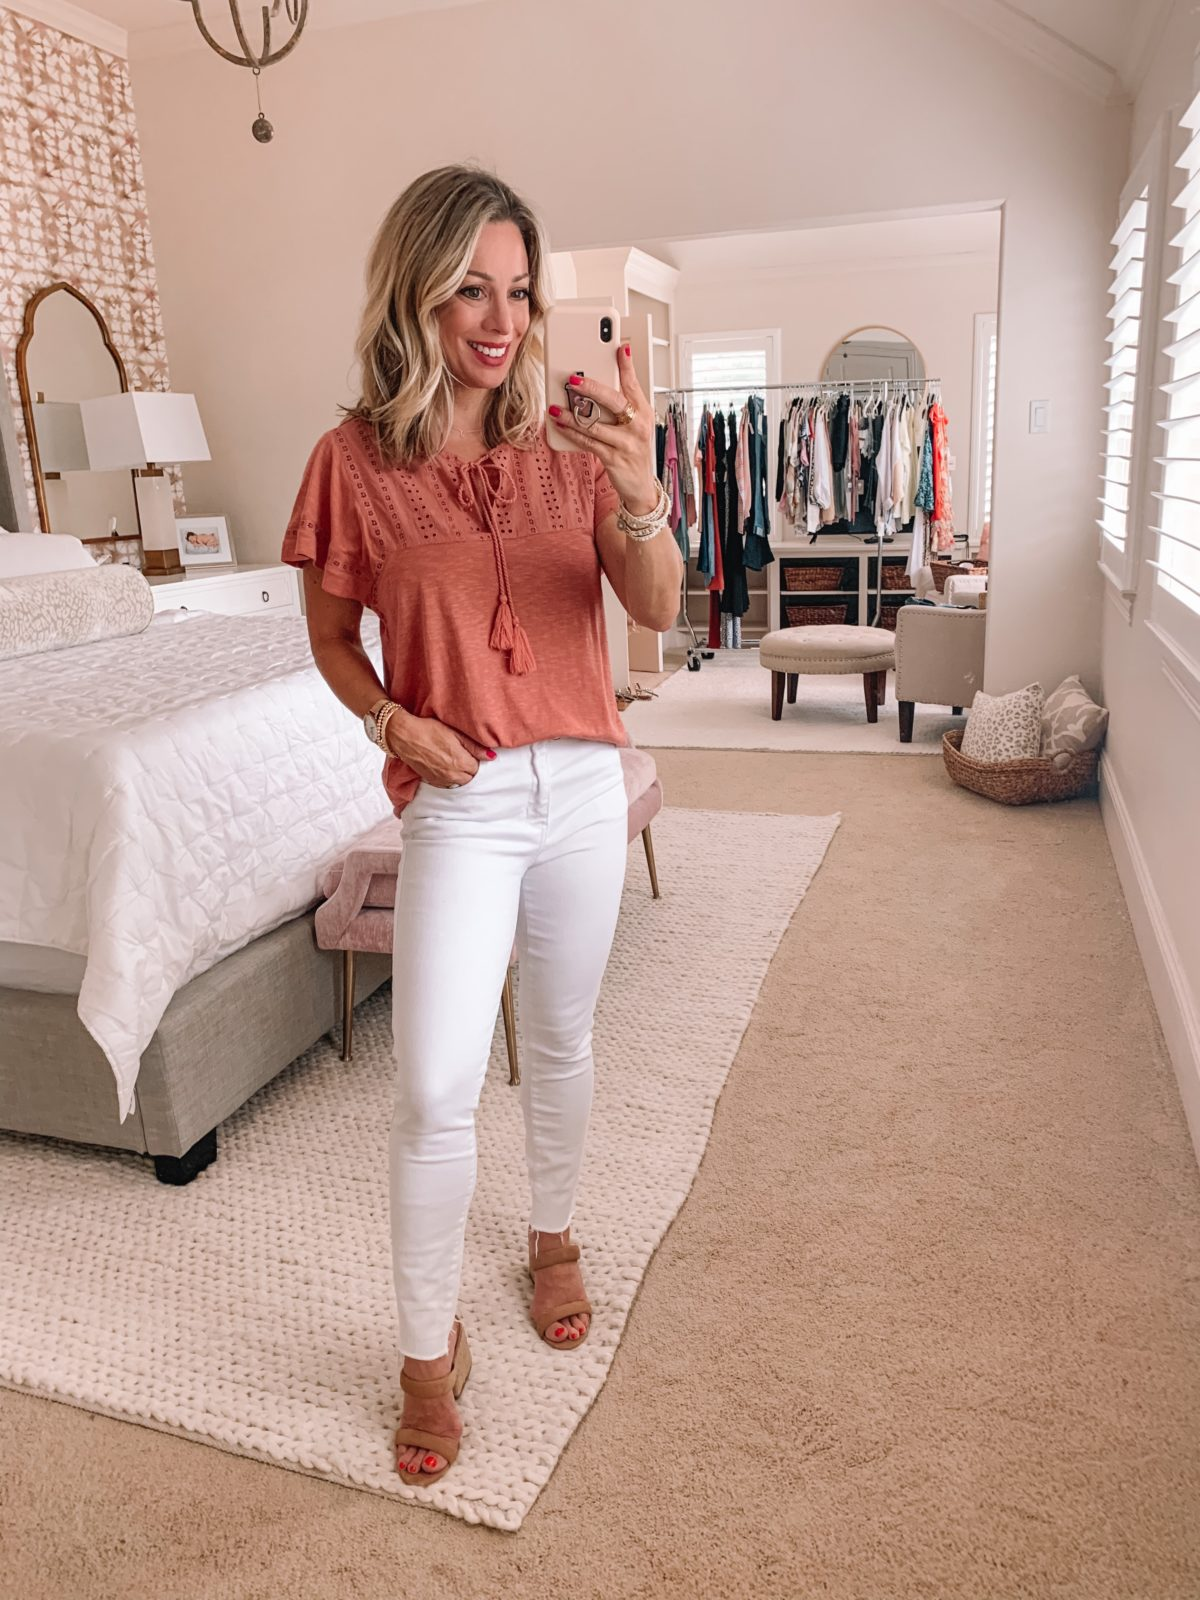 Dressing Room Finds Nordstrom and Target, Crochet Tee, Kut from Kloth Skinny White Jeans, Sandals